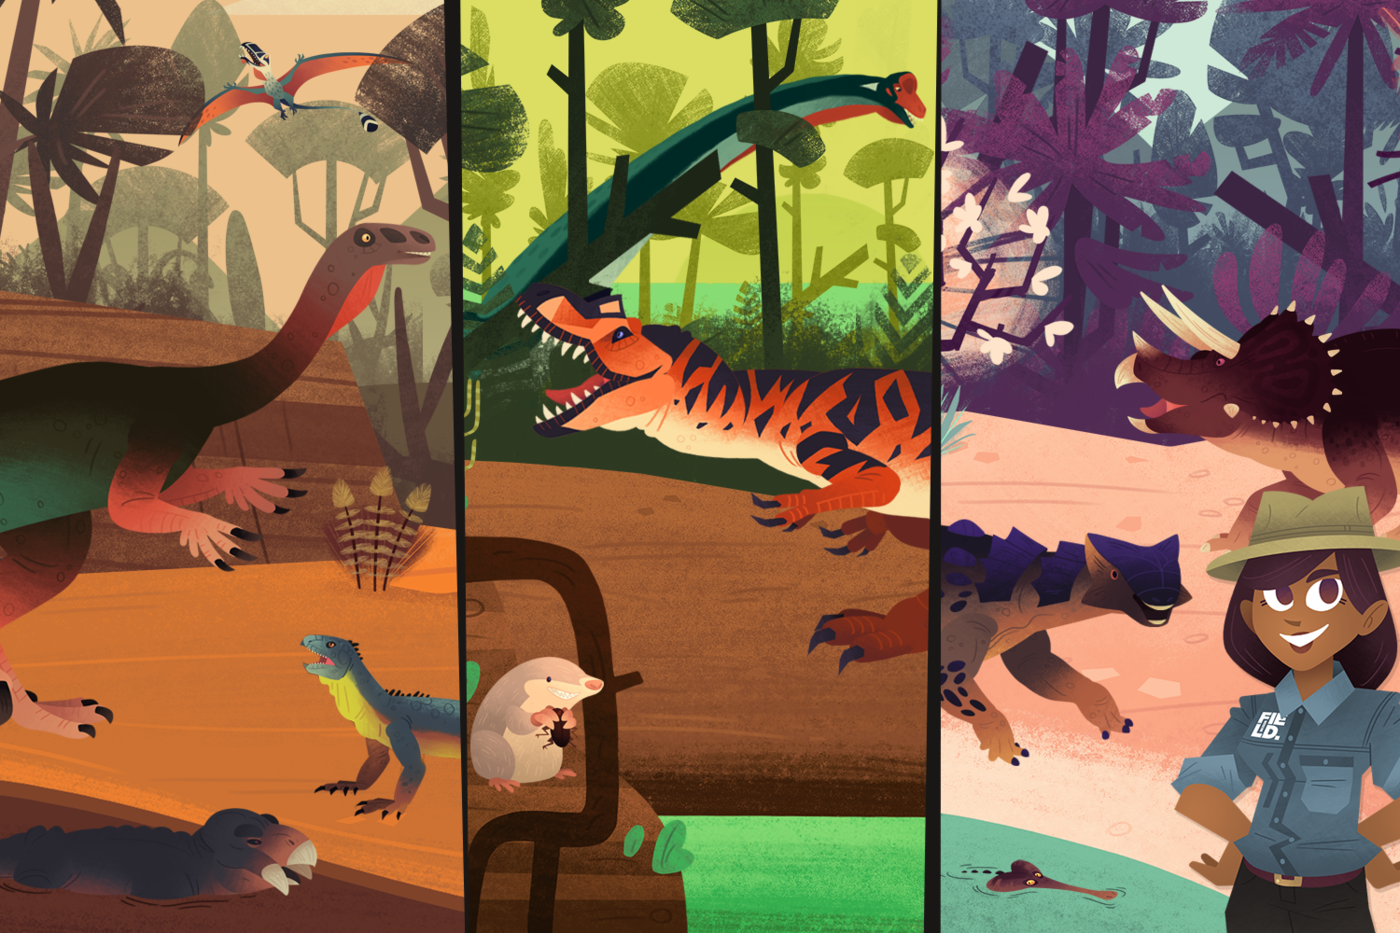 A composite image featuring stills from the animated game, Mission to the Mesozoic. The image contains three panes, each featuring various dinosaurs, mammals, and plants from the Cretaceous. A scientist appears in the third frame, smiling at the user with her hands on her hips.